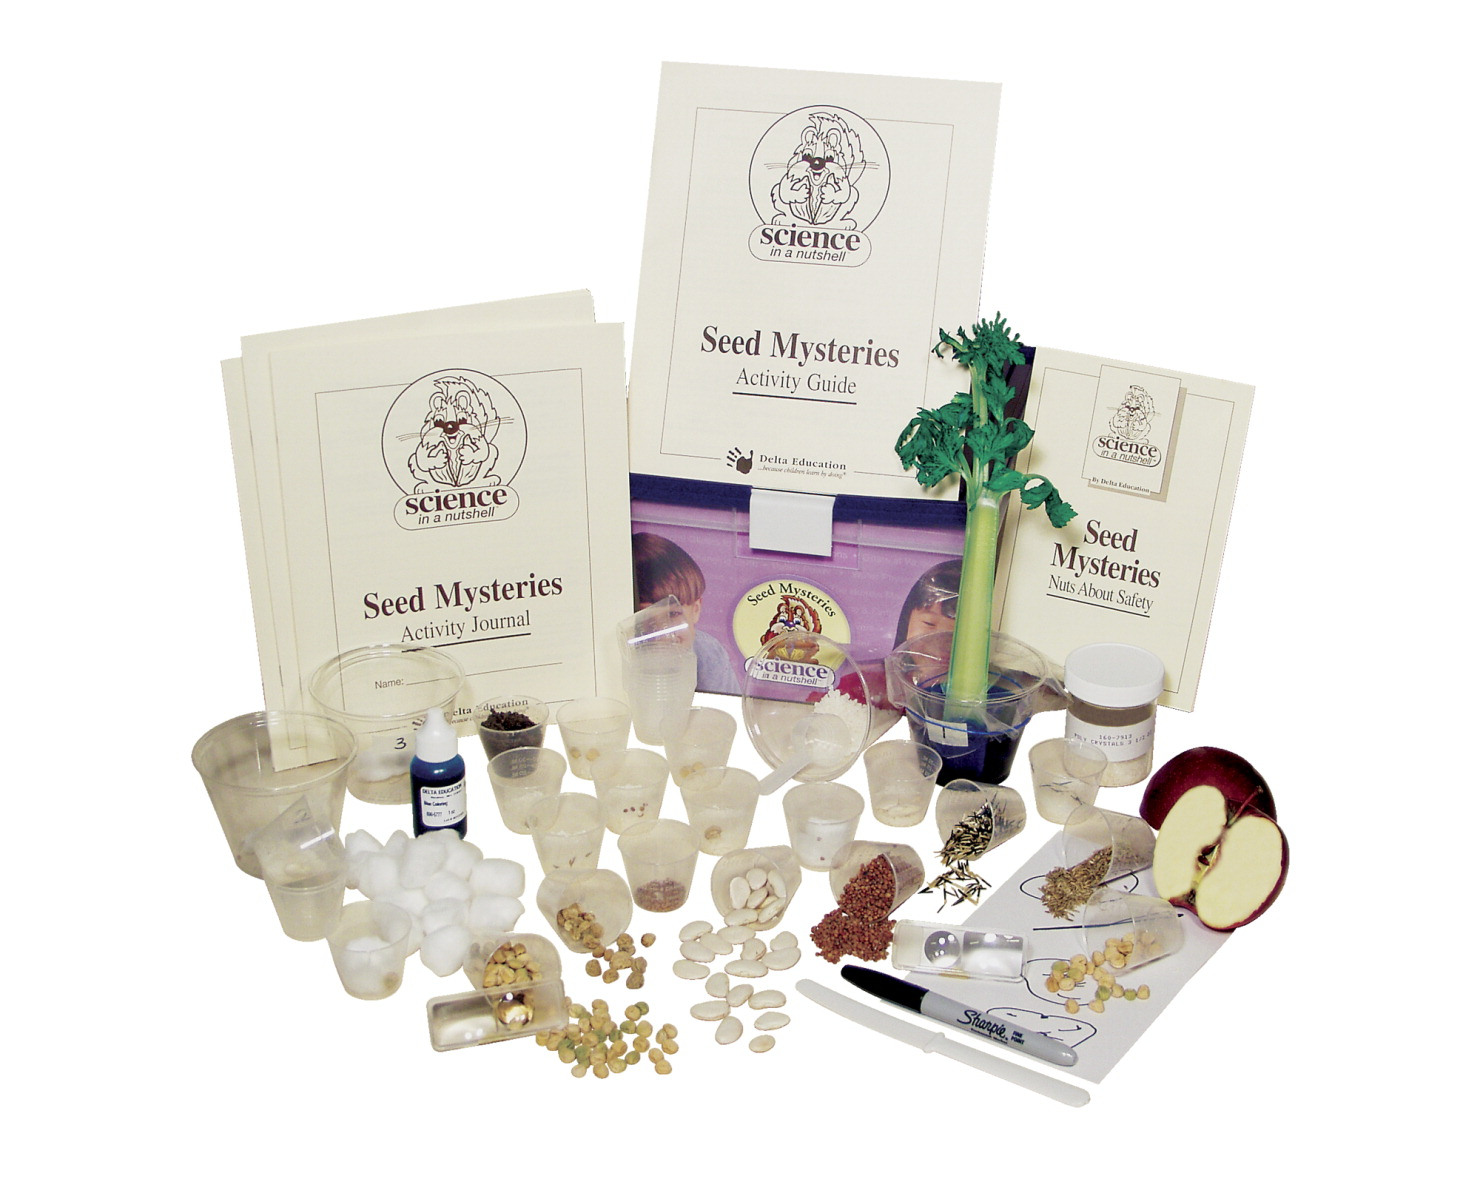 Delta Science in a Nutshell Seed Mysteries Kit